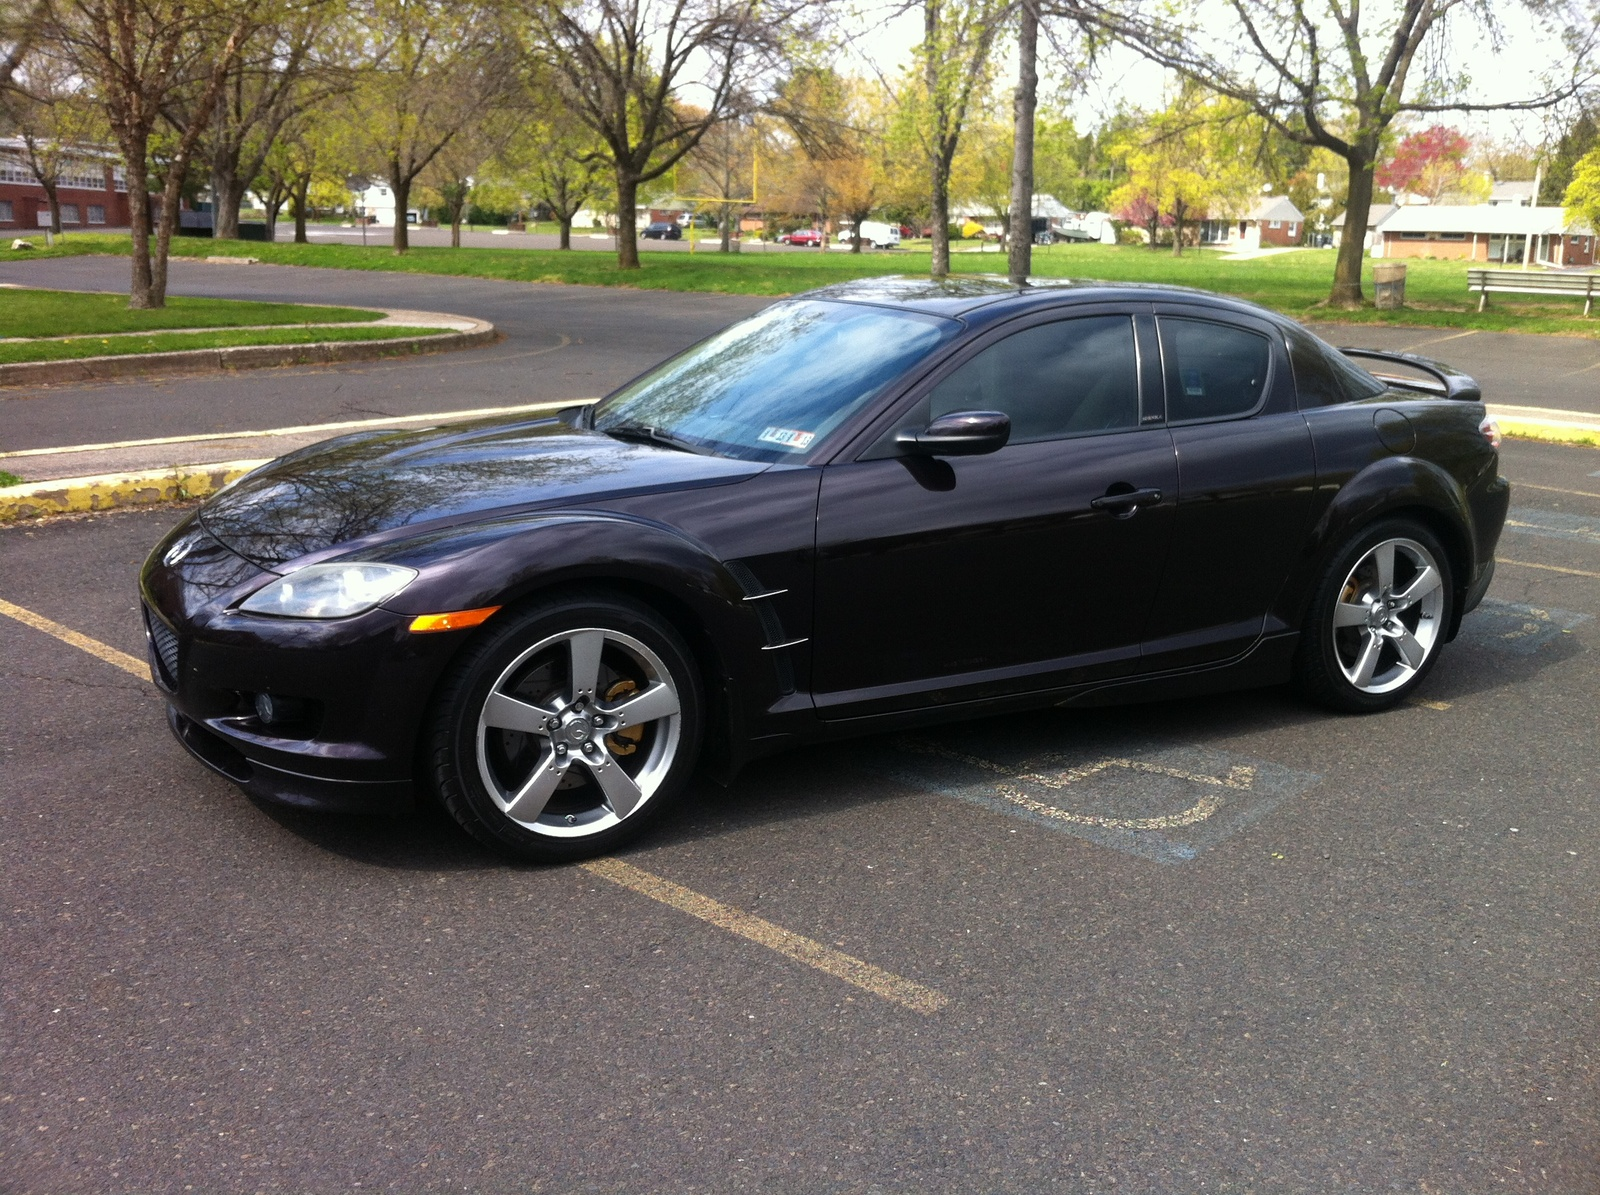 2005 mazda rx 8 exterior pictures cargurus. Black Bedroom Furniture Sets. Home Design Ideas